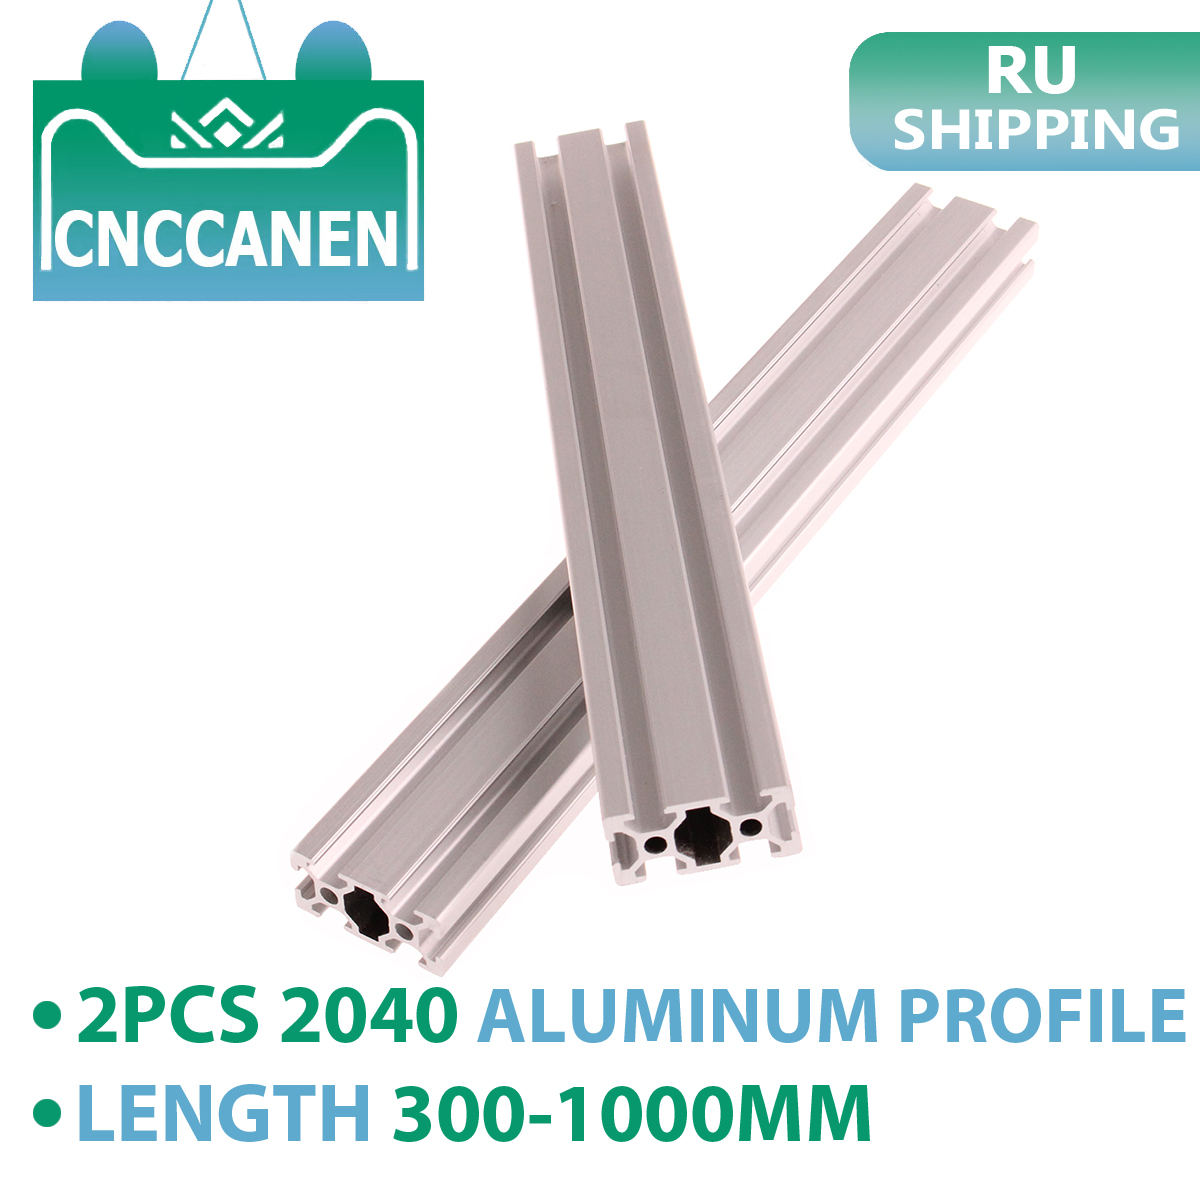 2PCS <font><b>2040</b></font> Aluminum Profile <font><b>Extrusion</b></font> European Standard Anodized Linear Rail 300mm 400mm 800mm 1000mm for CNC 3D Printer Parts image